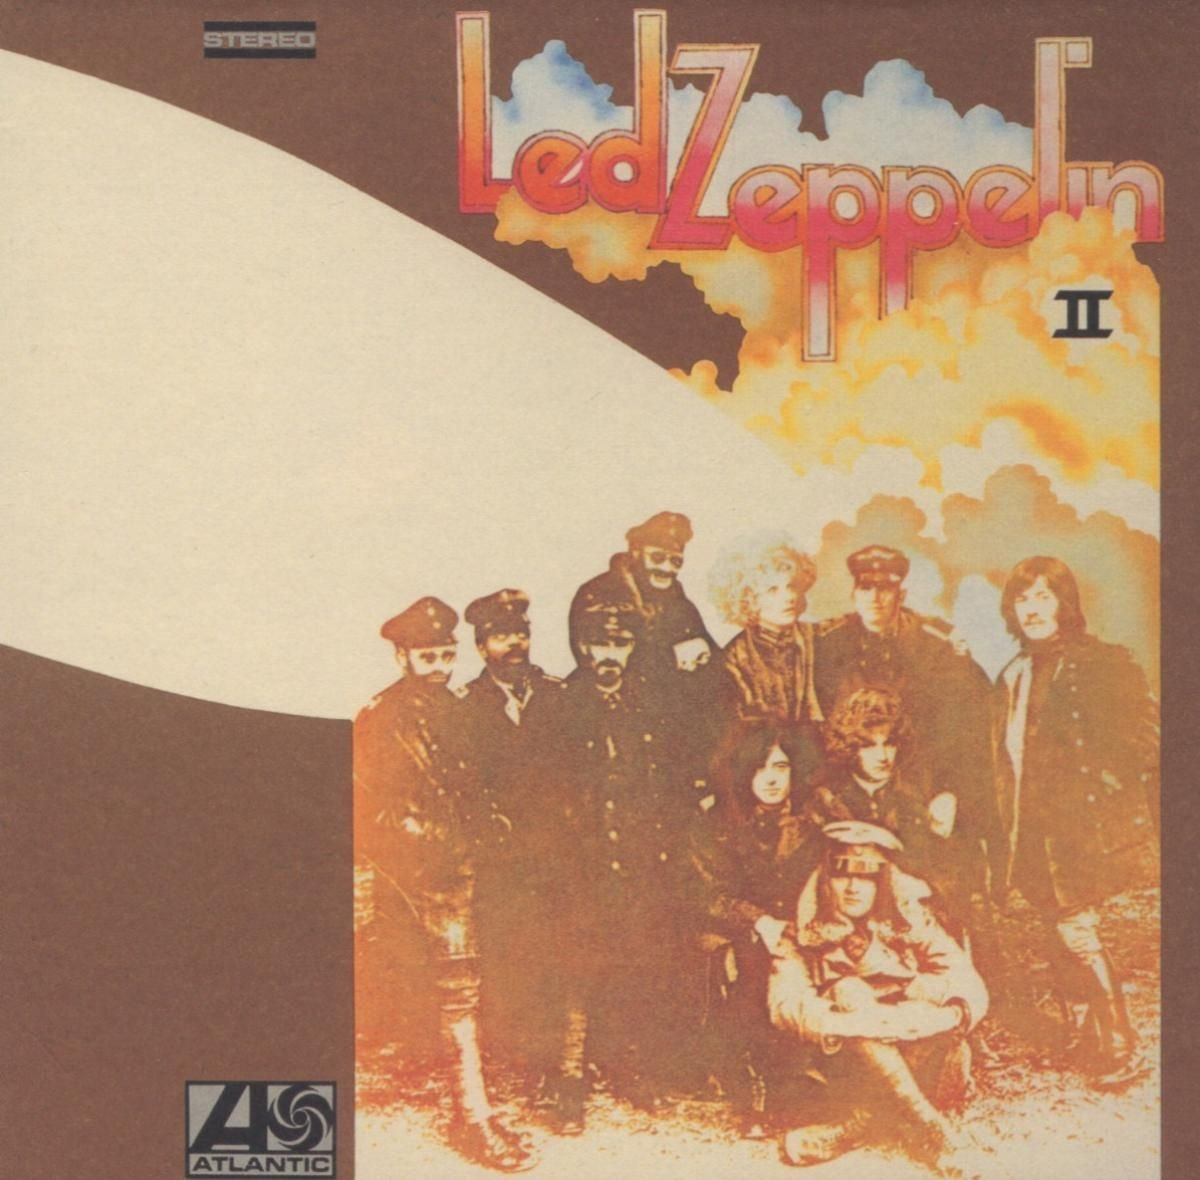 What Is and What Should Never Be - Led Zeppelin II album cover